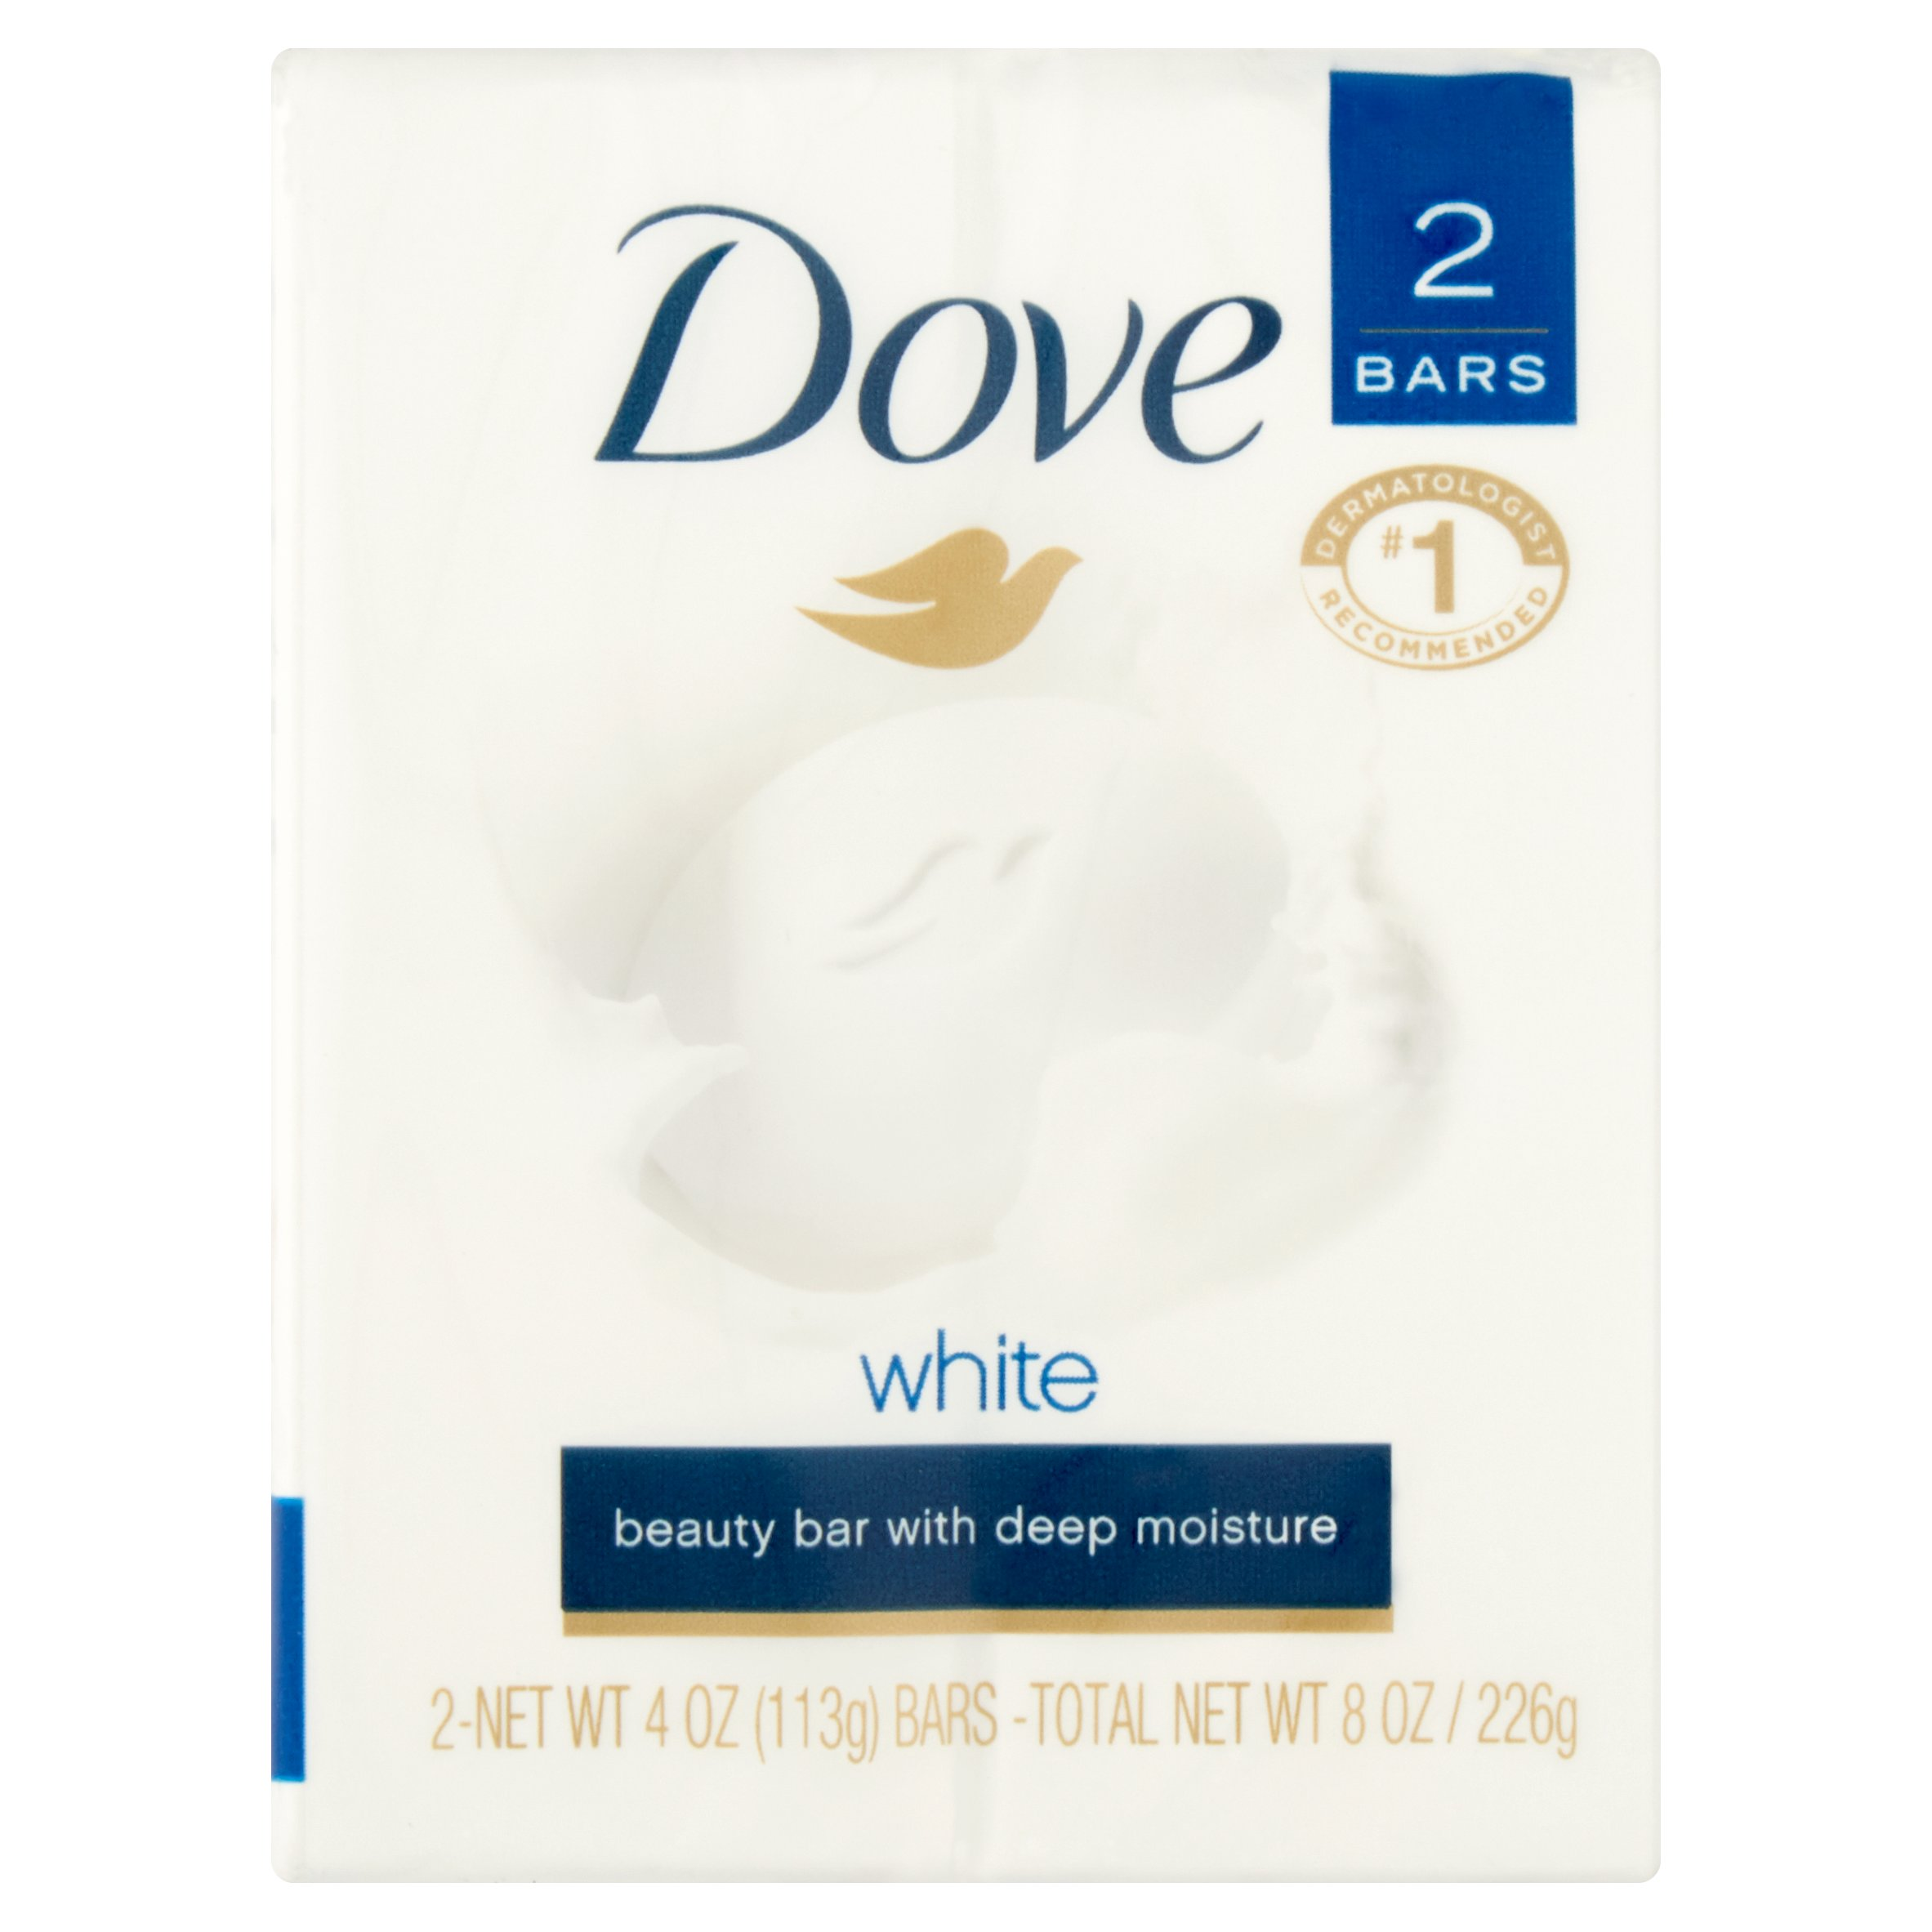 Dove White Beauty Bar with Deep Moisture, 4 oz, 2 count - Walmart.com